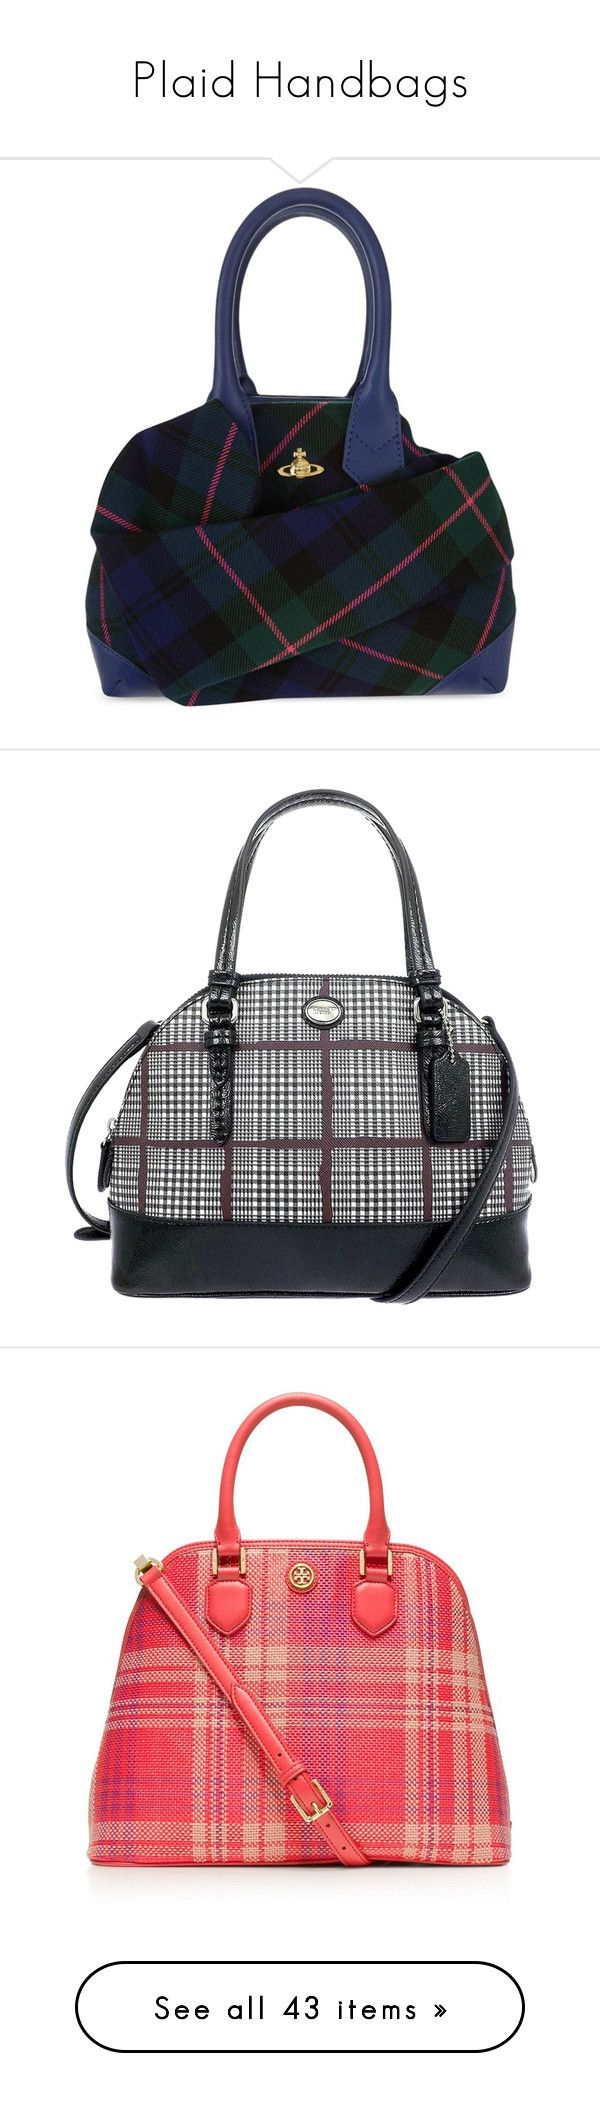 """Plaid Handbags"" by jayhawkmommy on Polyvore featuring bags, handbags, tote bags, handbags totes, vivienne westwood handbags, vivienne westwood purse, zip tote, tote bag purse, multicolor and coach satchel"